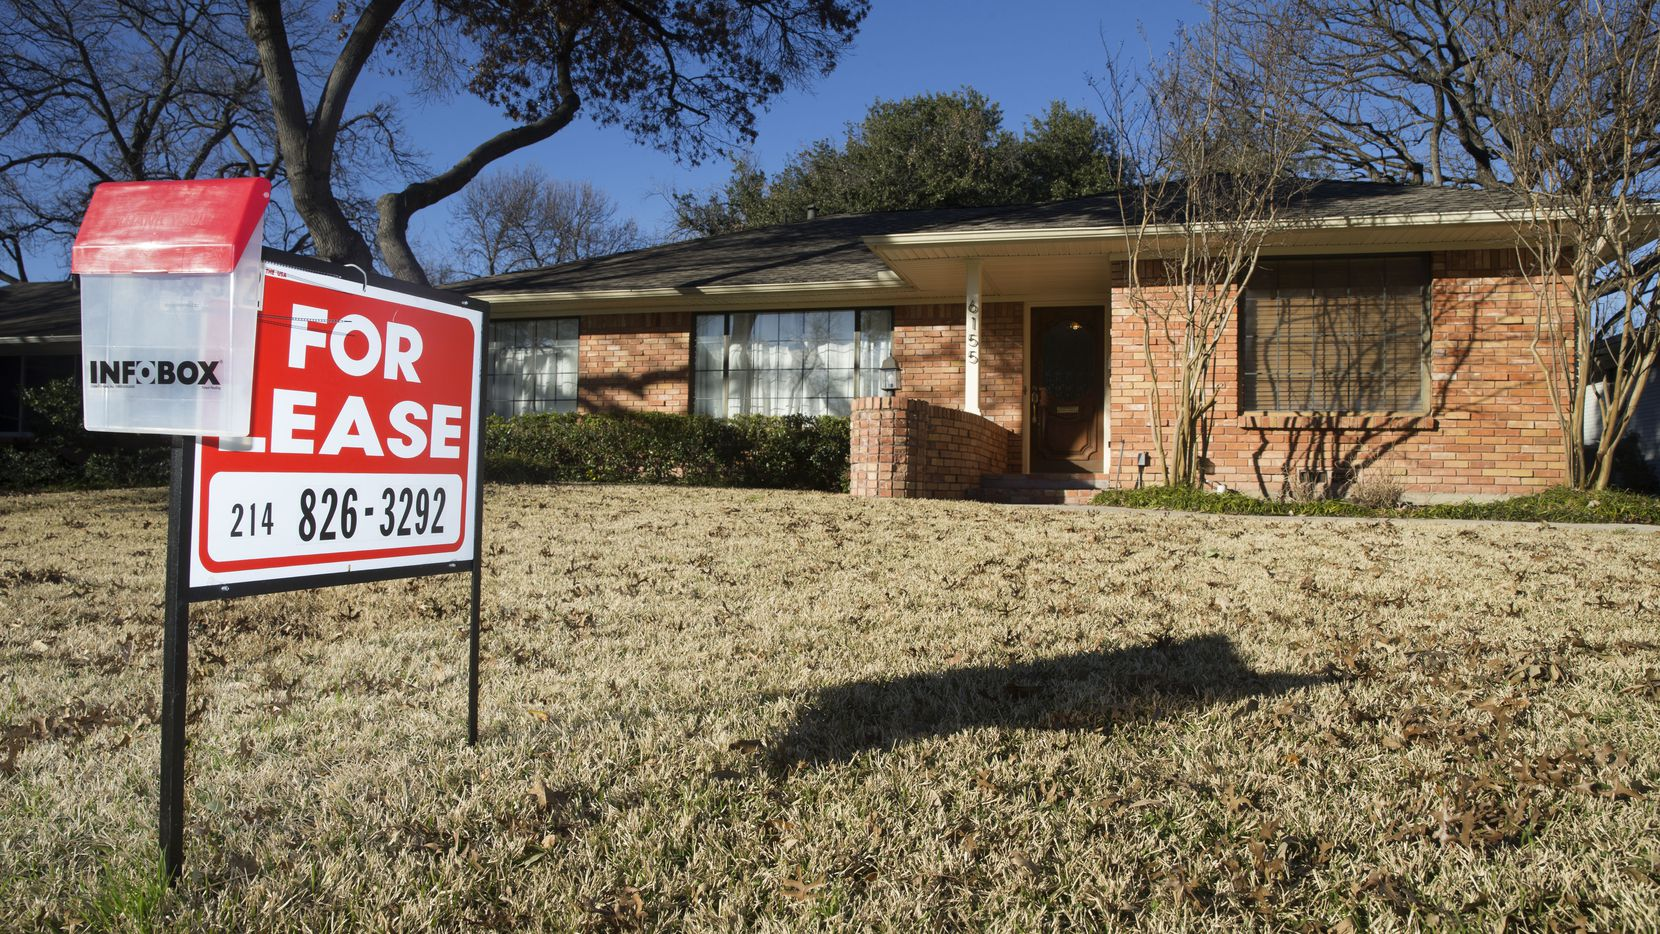 More than 8 percent of the houses sold in the Dallas area last year went to investors who rented or flipped the properties, according to CoreLogic.